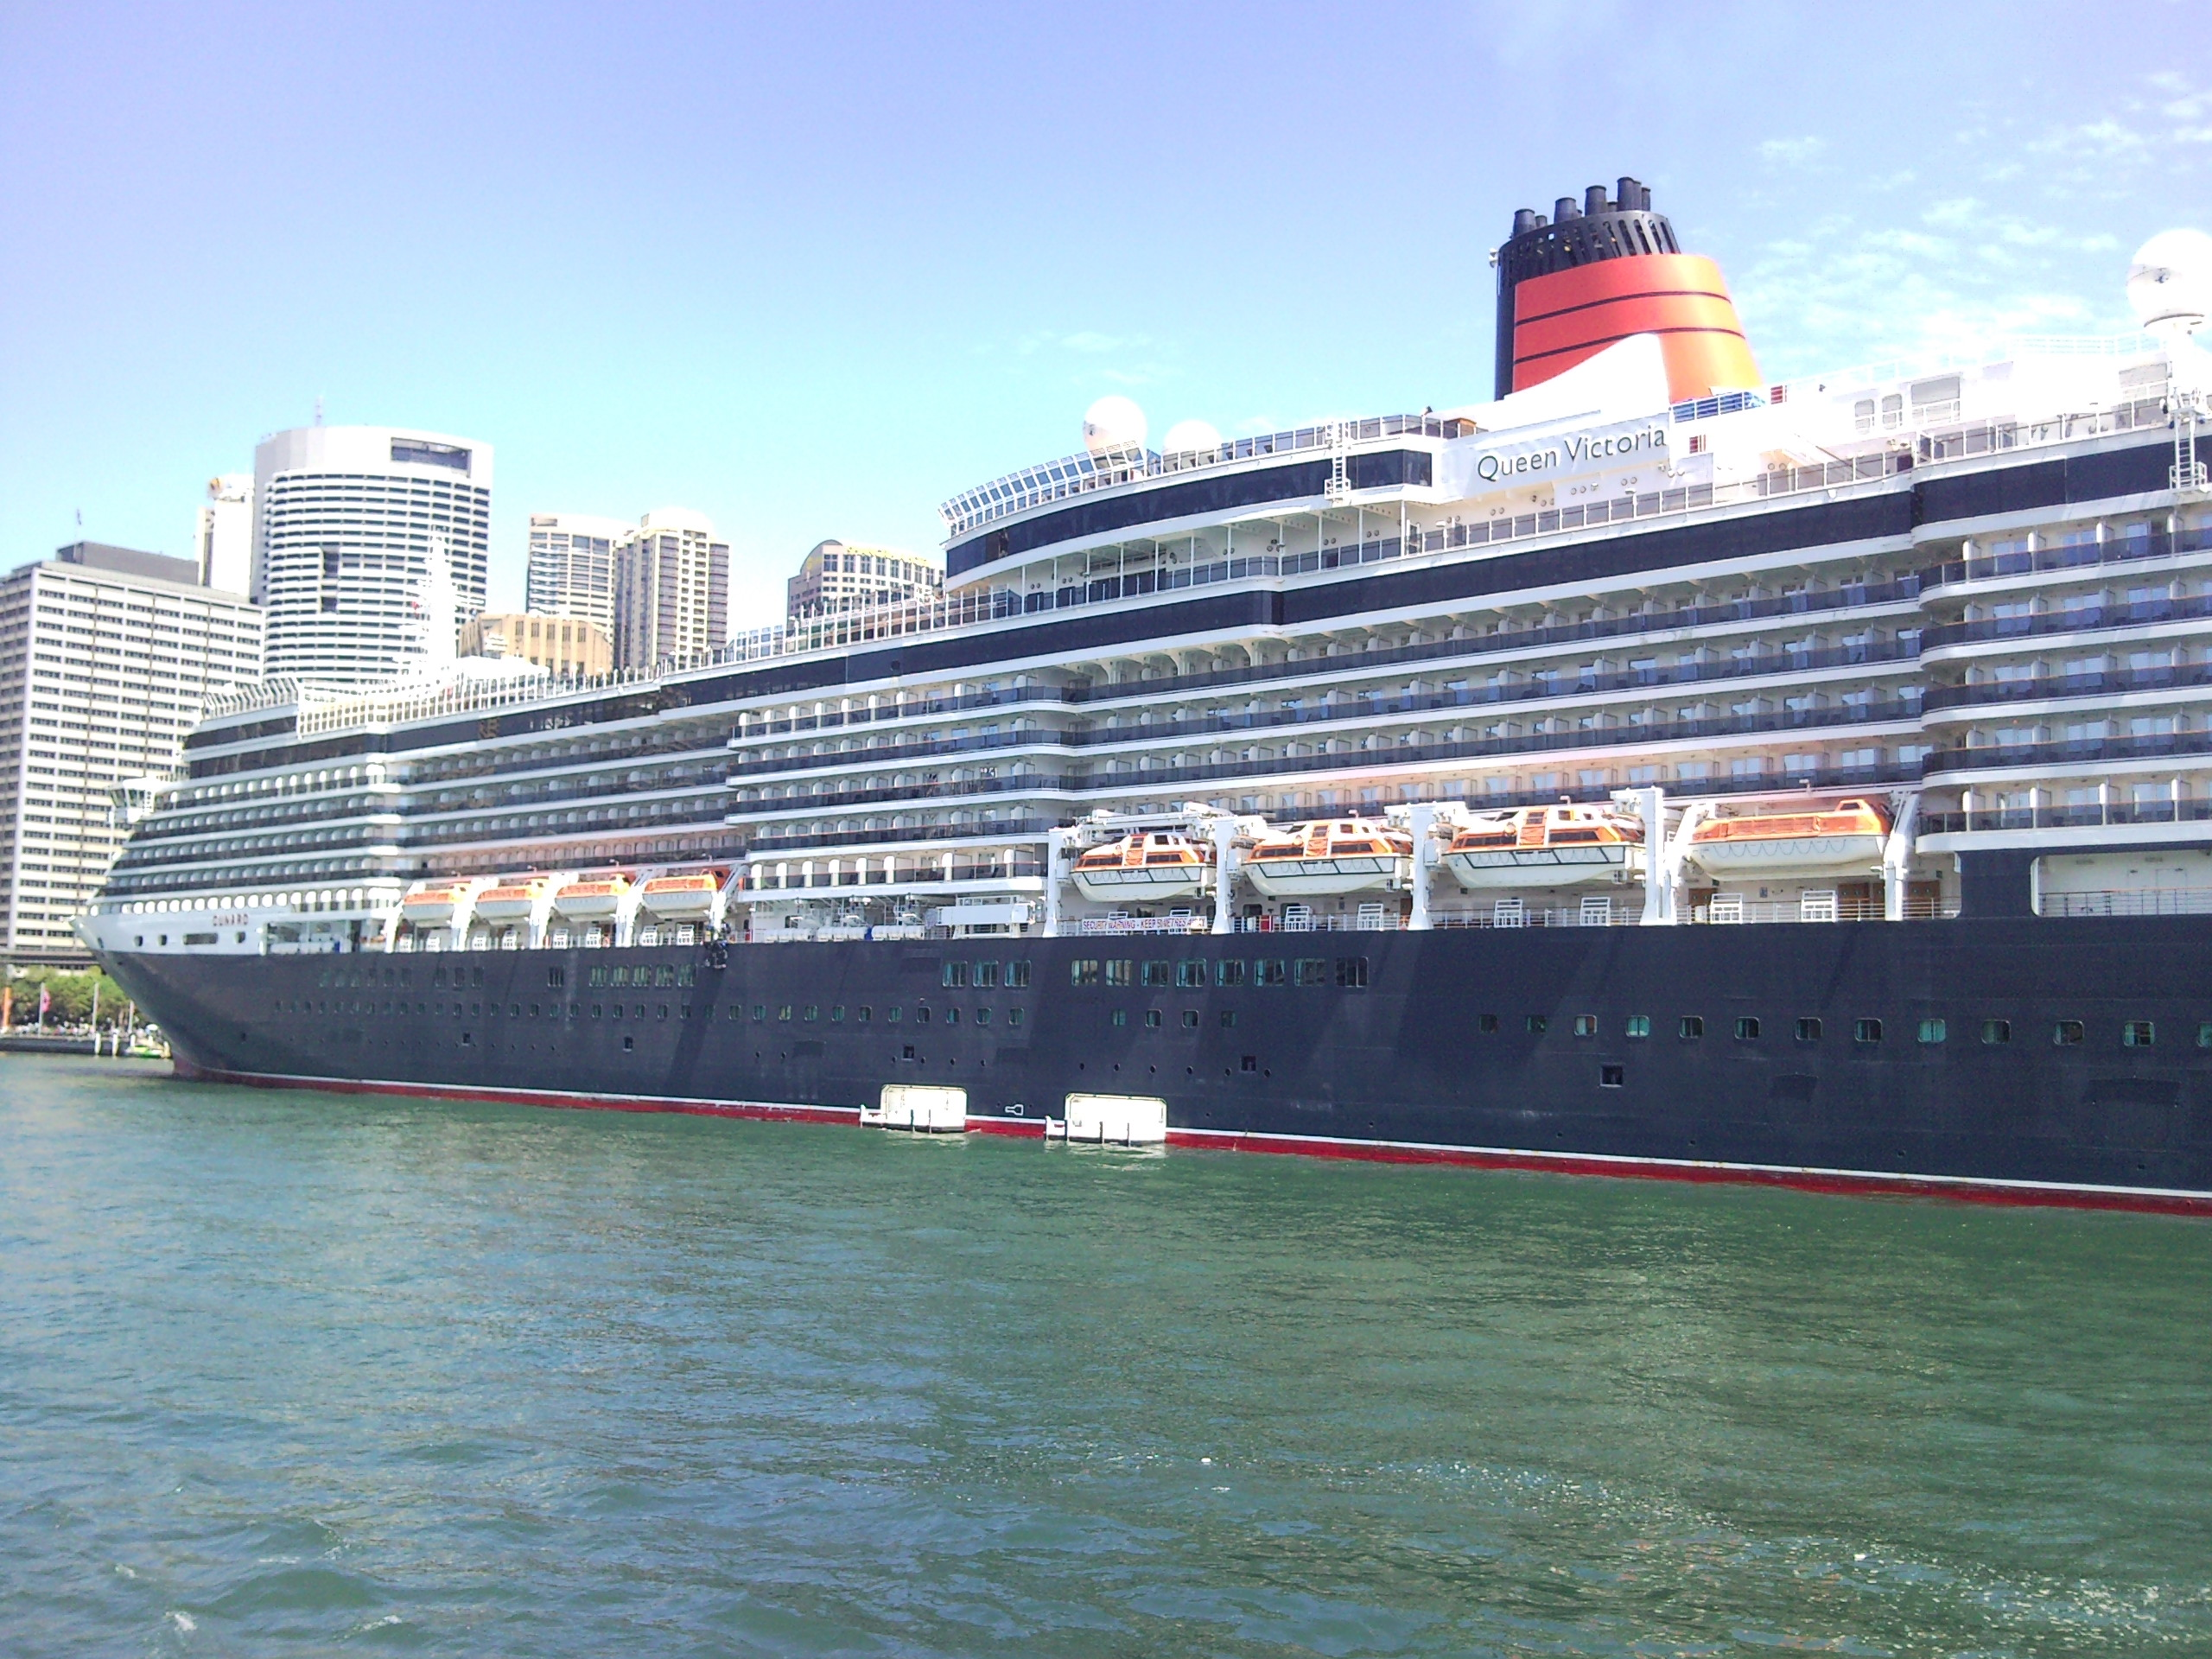 The Queen Victoria Cruise Ship Docked At Circular Quay